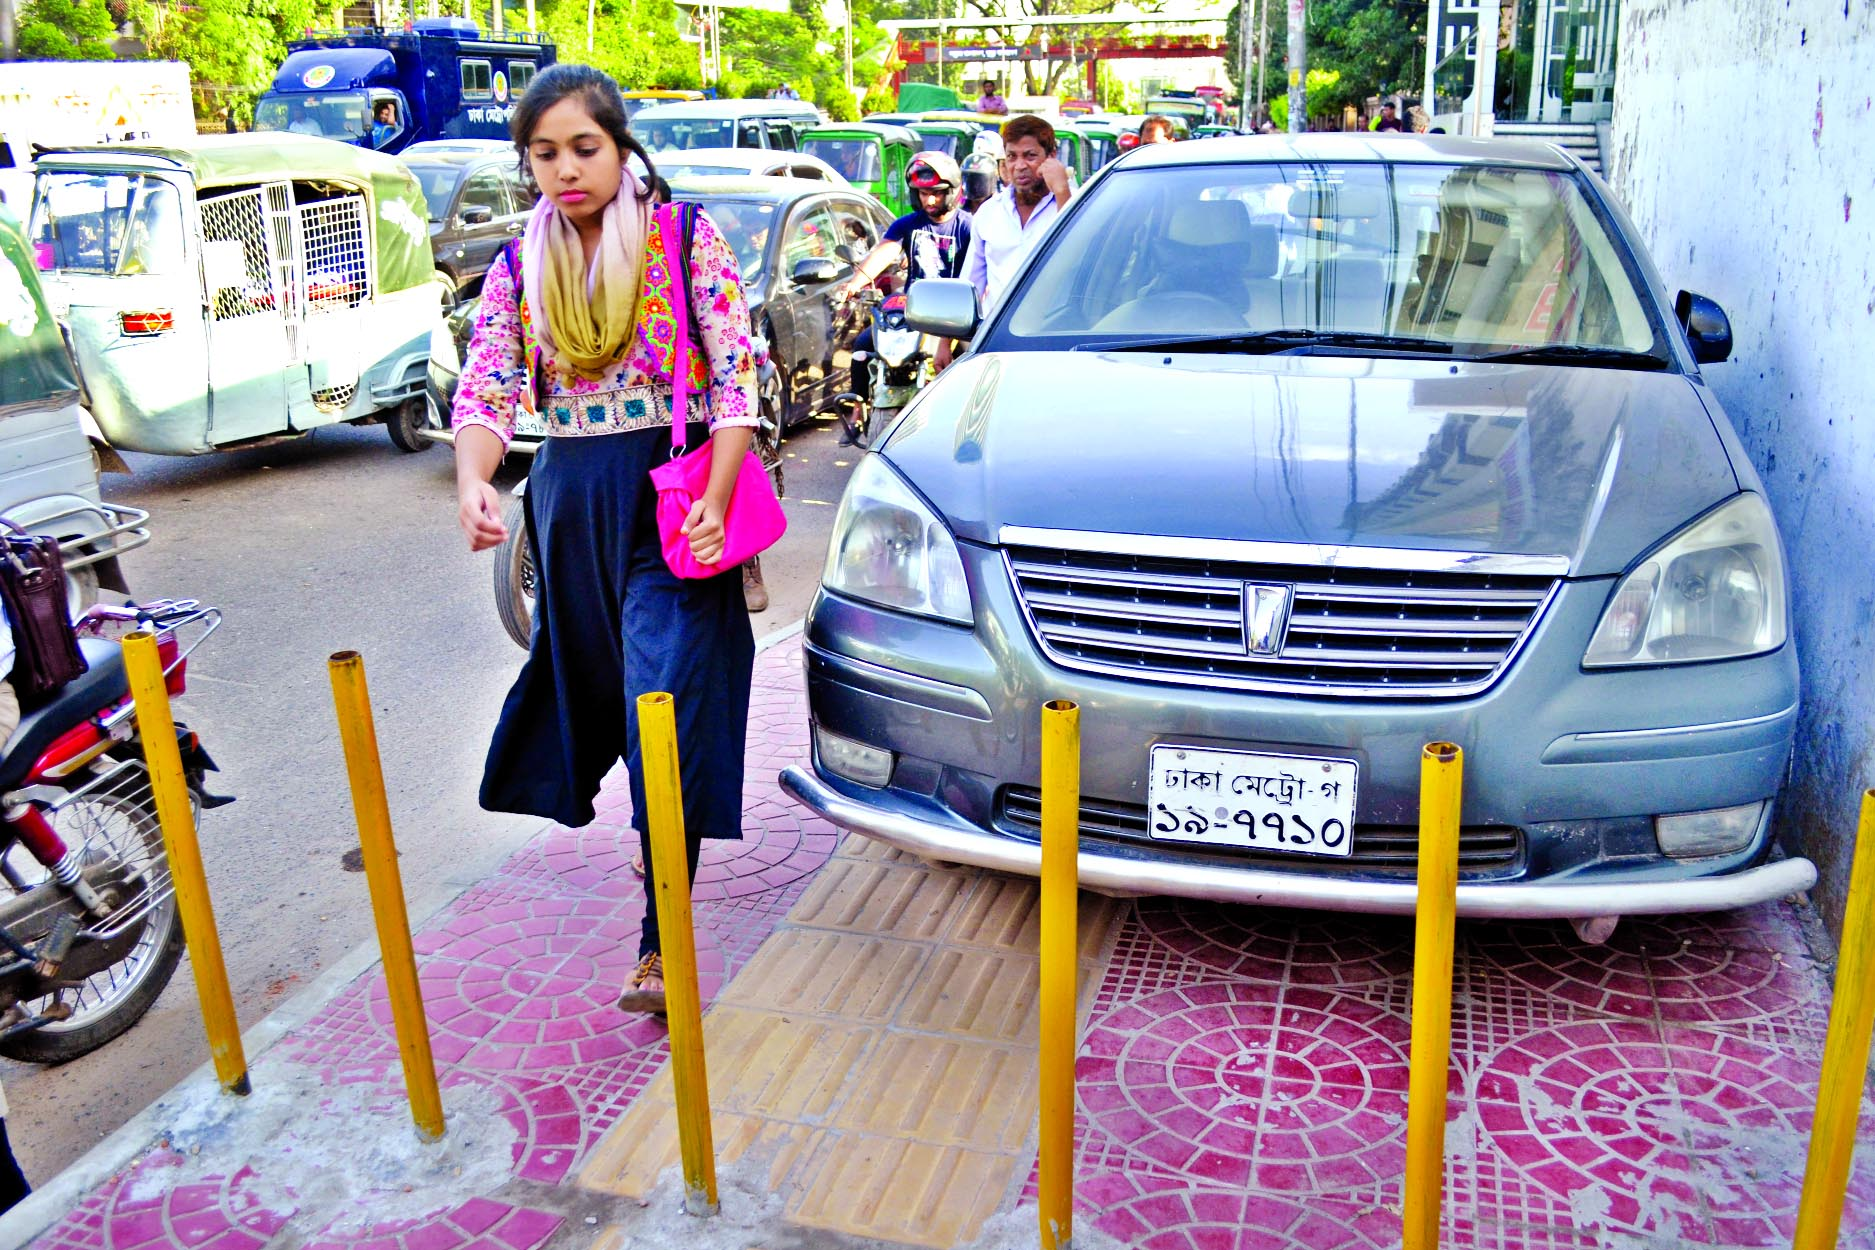 A motorized vehicle parked illegally at a point near the pipe barricade installed by DMP creating obstacle for pedestrians. The snap was taken from the city's Bangla Motor area on Thursday.